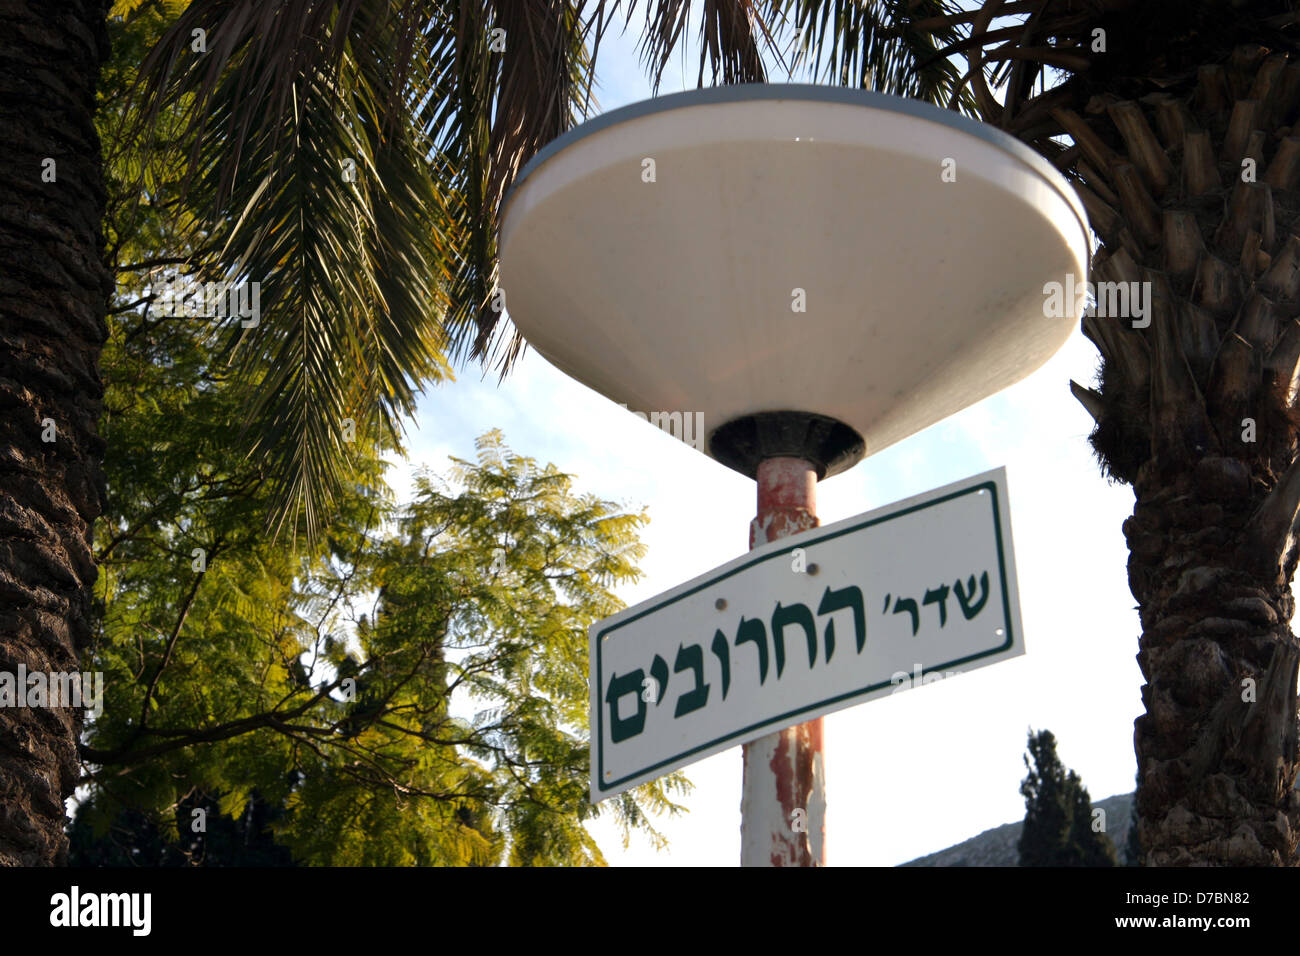 route name in kibbutz beit alfa - Stock Image